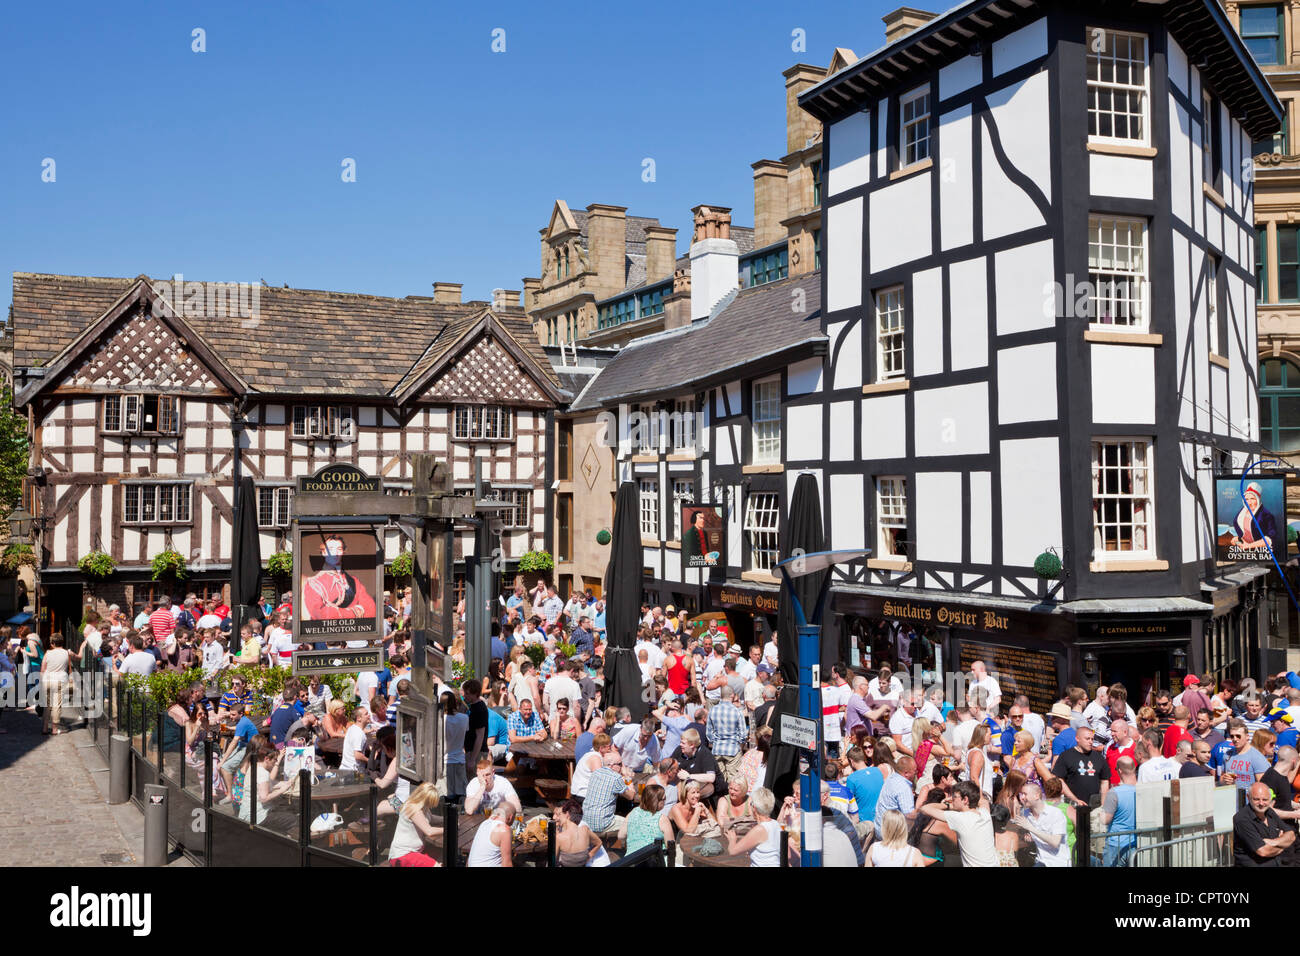 Crowded Sinclair's Oyster Bar and The Old Wellington public house Cathedral Gates Manchester City Centre England - Stock Image